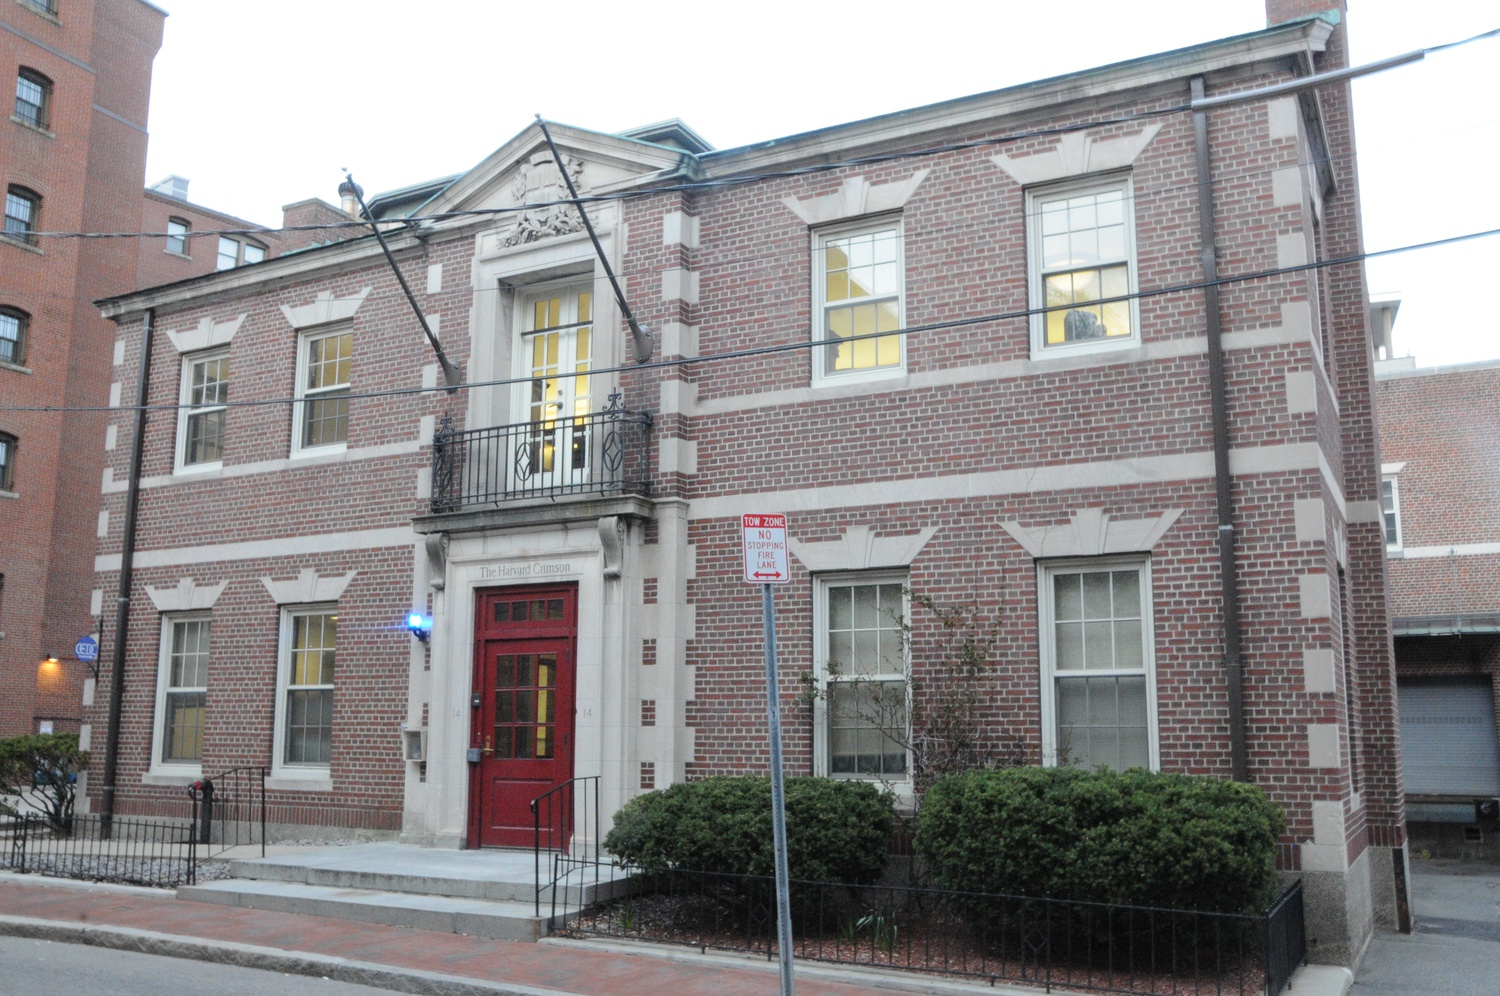 The Harvard Crimson's staff works at 14 Plympton St., between Grolier Poetry and Adams House.